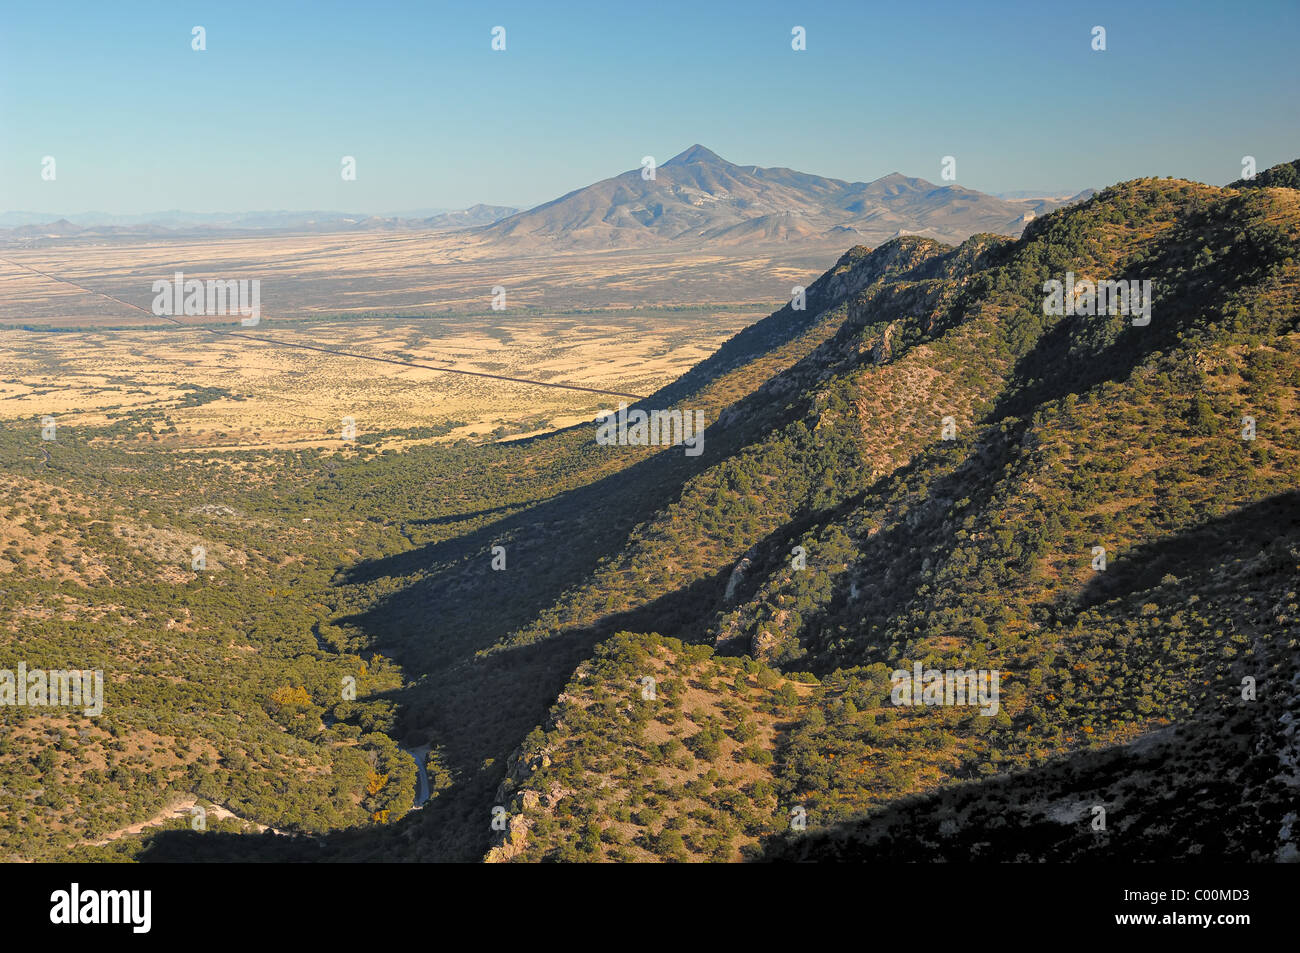 View from the top (elevation 6575 ft) of Montezuma Pass looking back at  Coronado  National Monument, Arizona, USA. - Stock Image